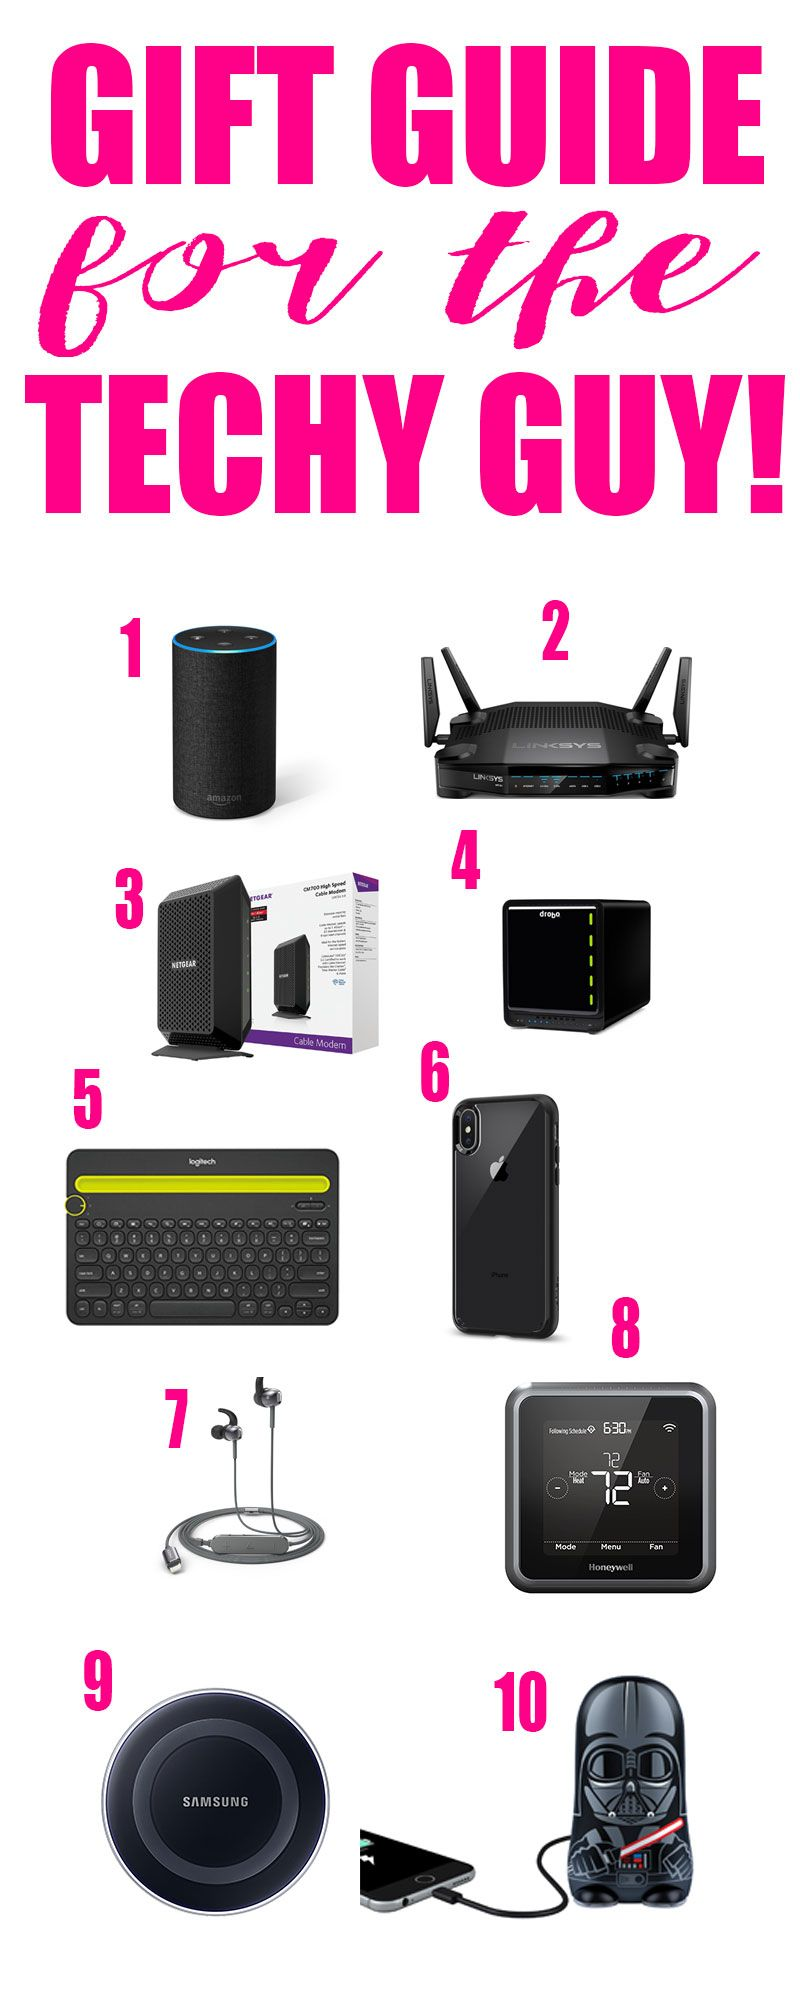 Gift Guide For The Techy Guy Gifts For Techies Electronic Gifts For Men Boyfriend Gifts